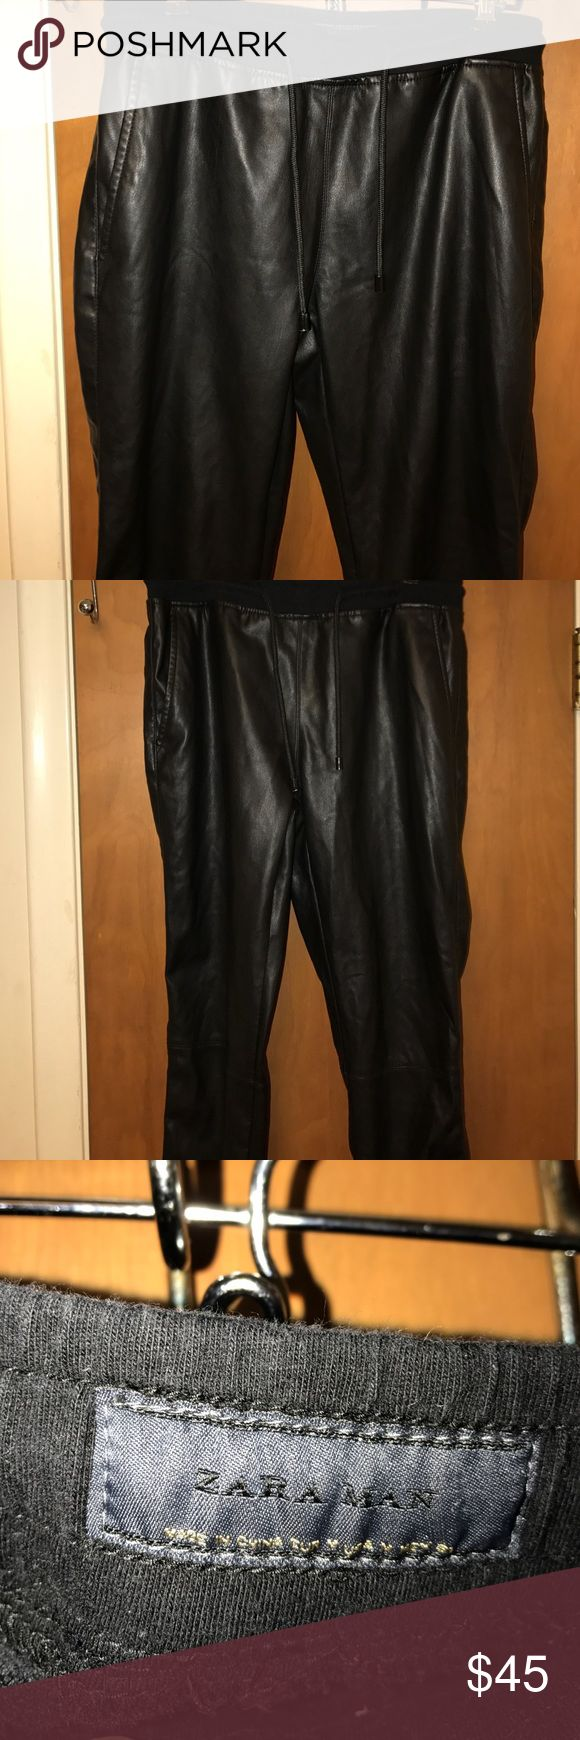 Zara Man Faux Leather Pants -M Like New Condition. Worn for short time twice . 30 in inseam Zara Pants Sweatpants & Joggers